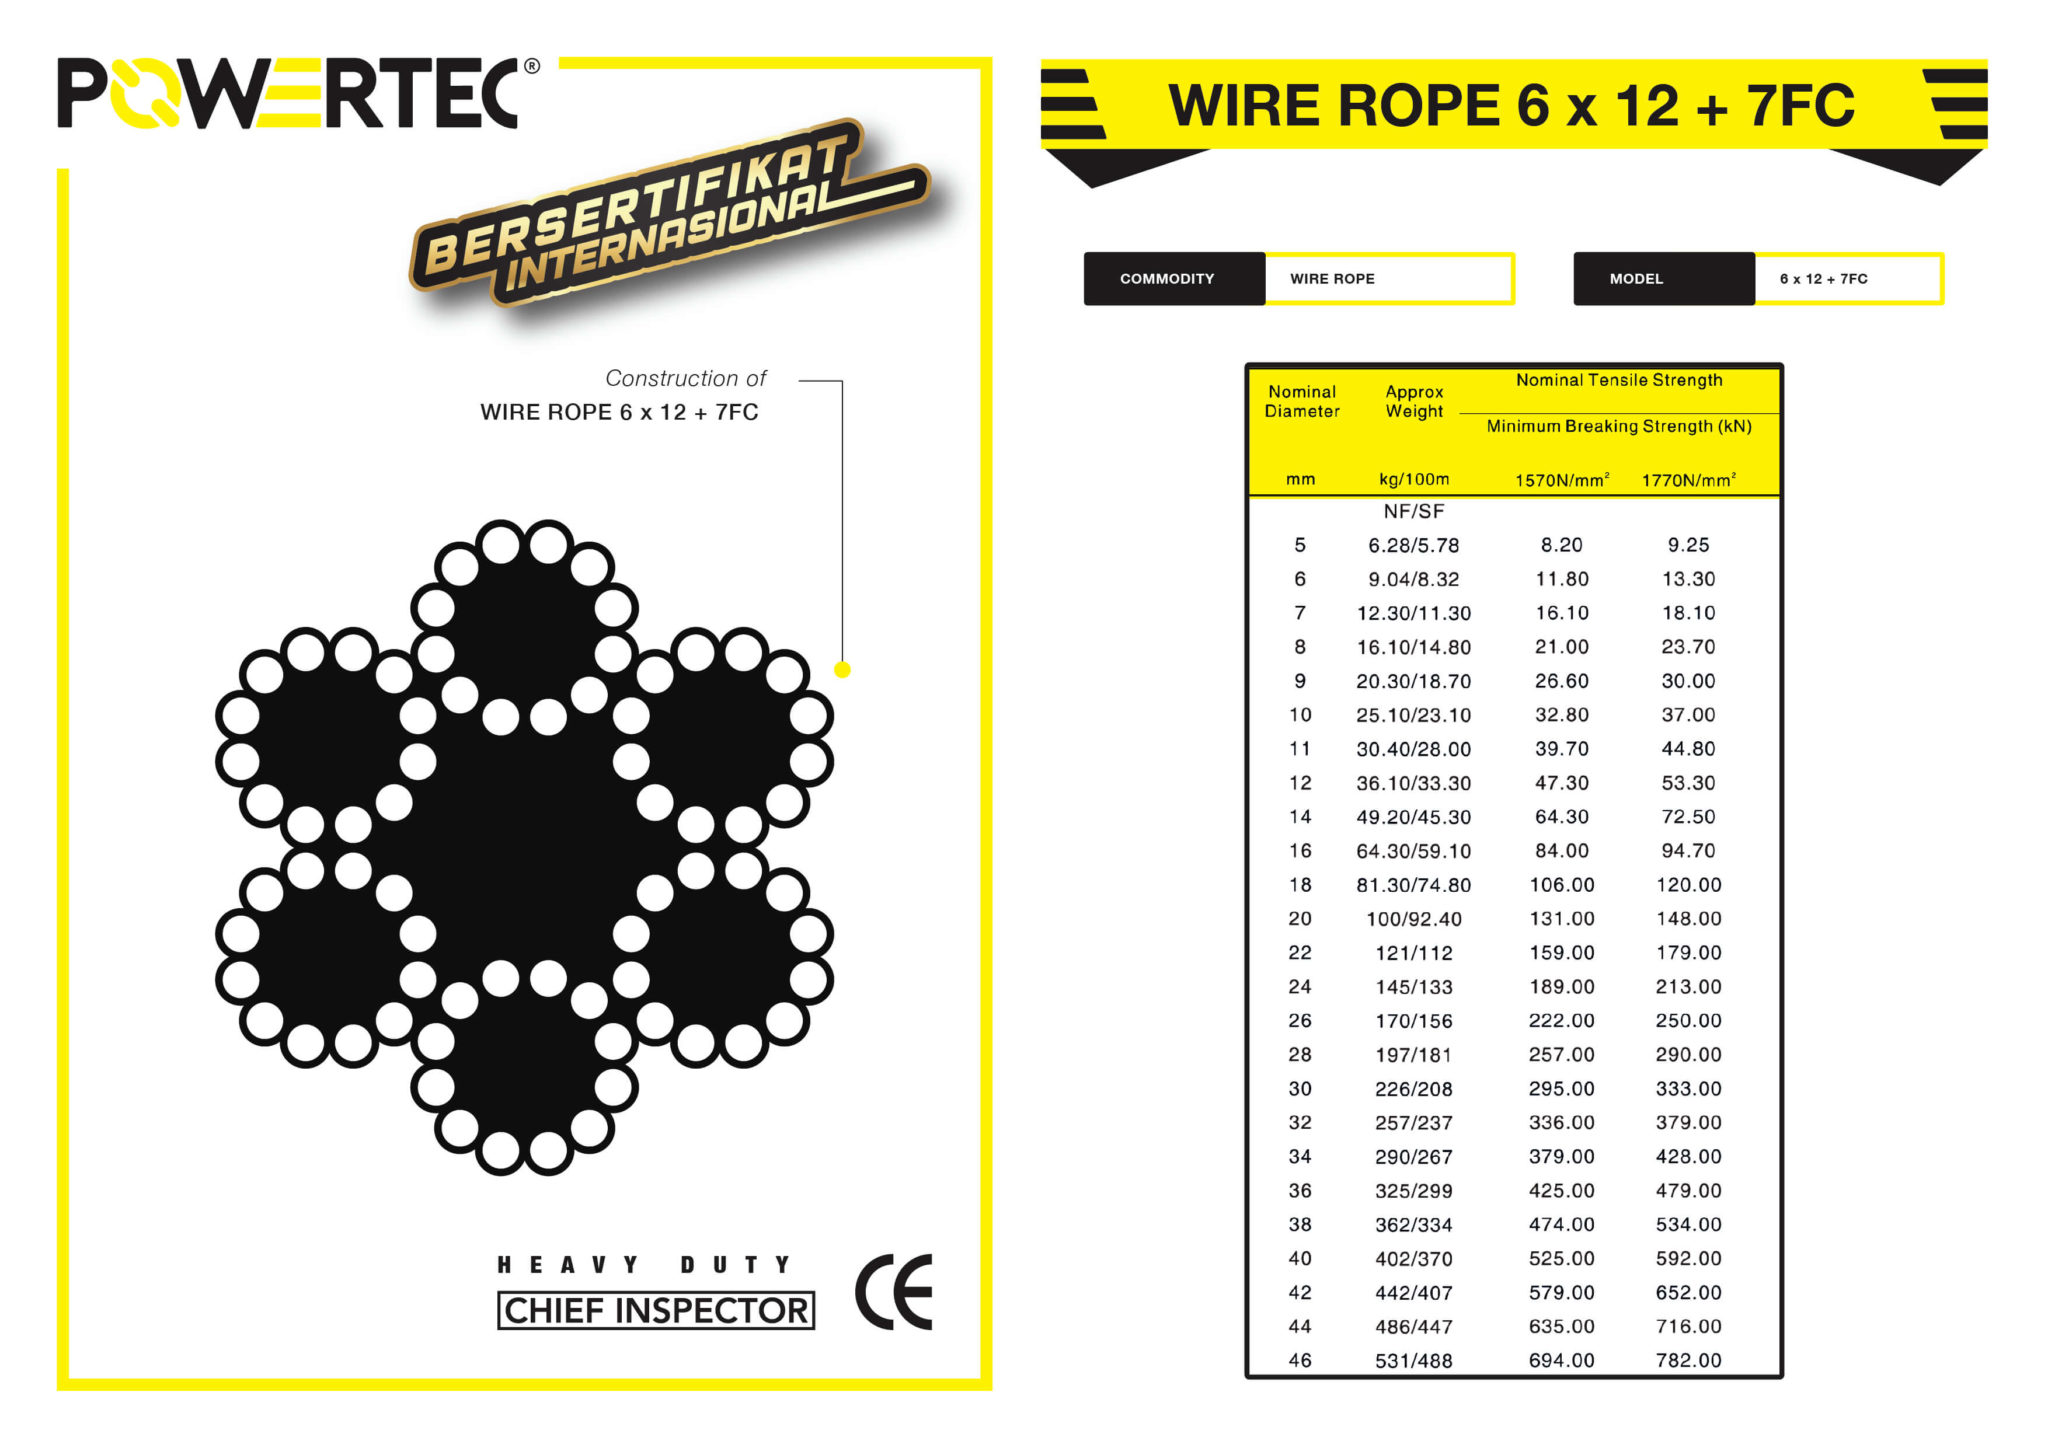 POWERTEC WIRE ROPE 6 x 12 + 7FC BROCHURE